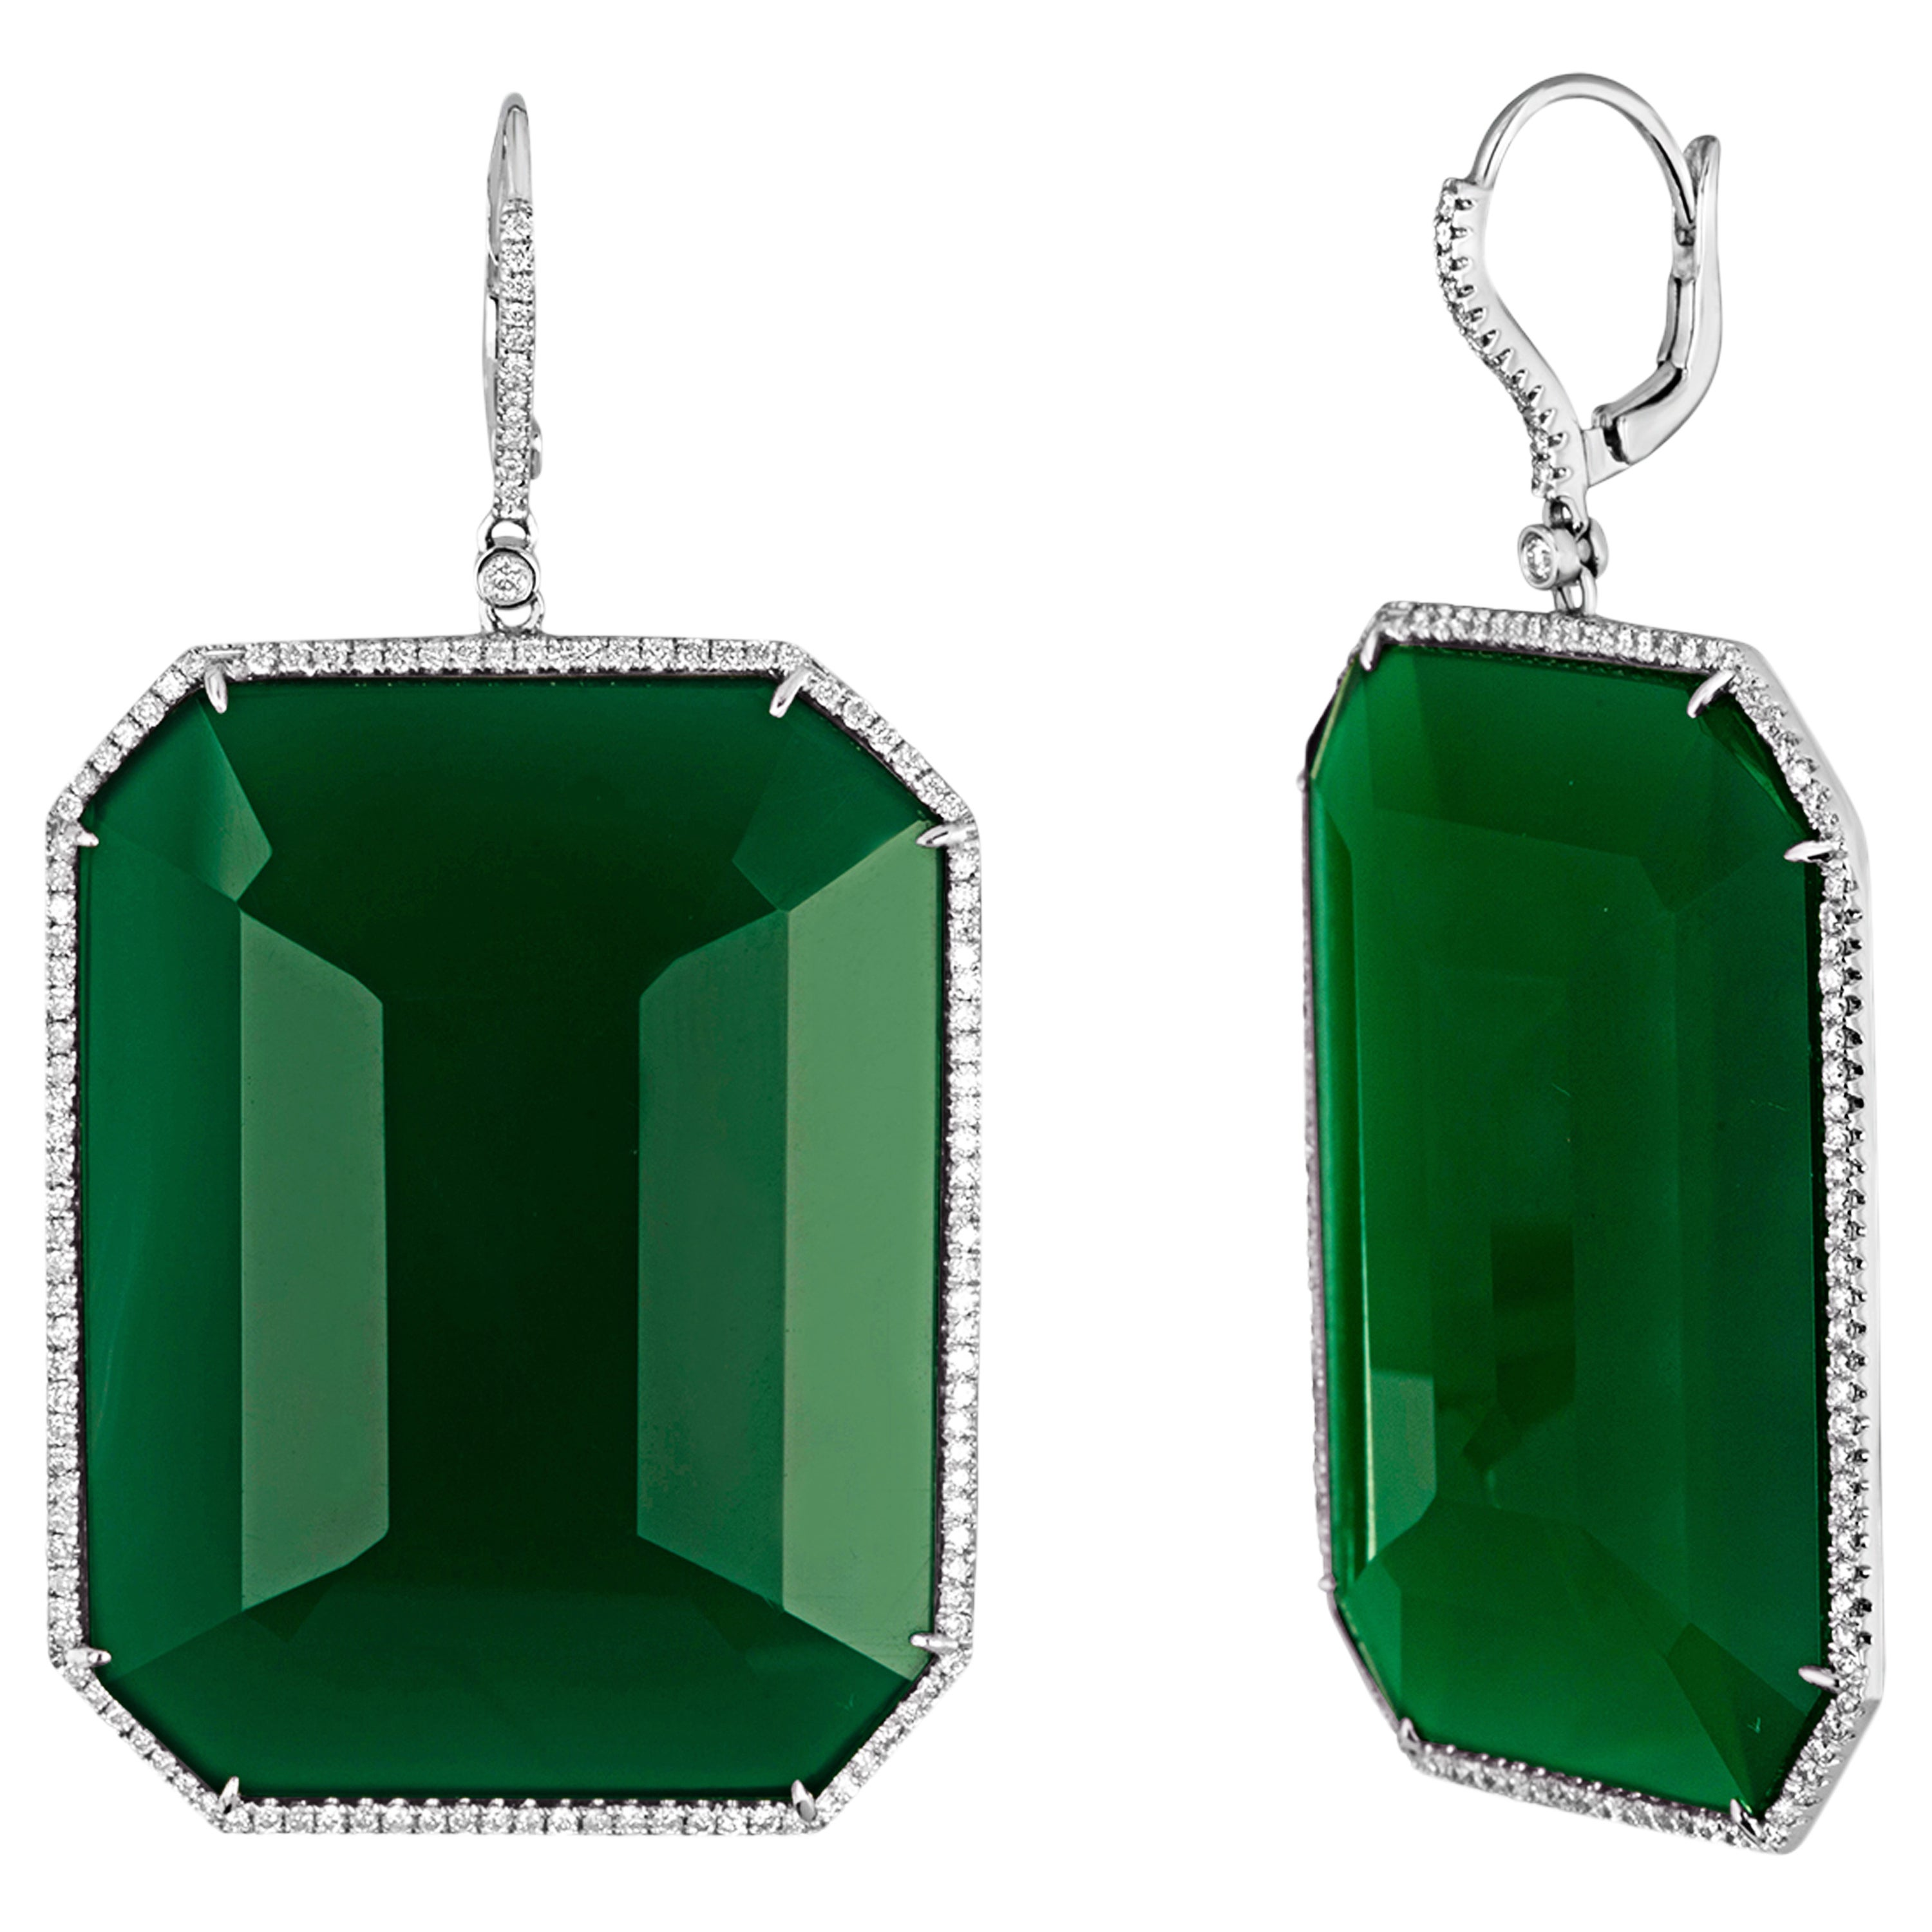 118.15 Carats Green Agate and Diamond Gold Earrings